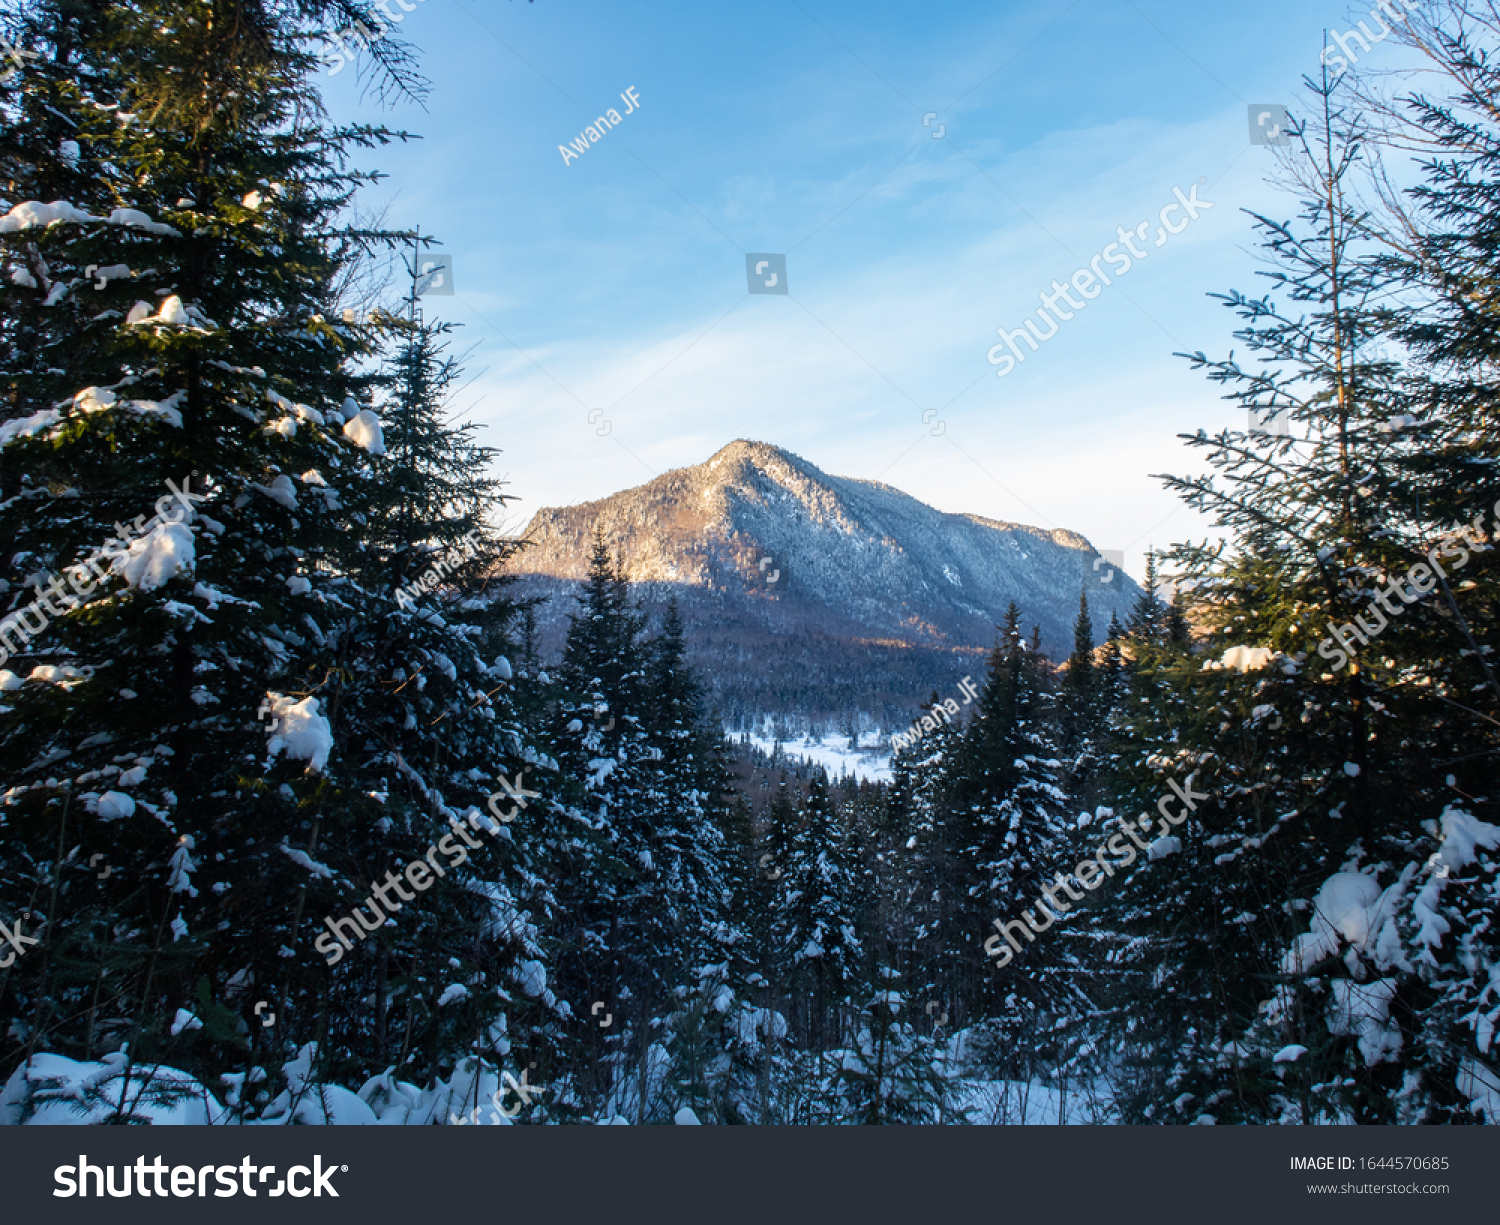 Beautiful winter view of a mountain with pine trees in the foreground at the Jacques Cartier national park, in Quebec, Canada